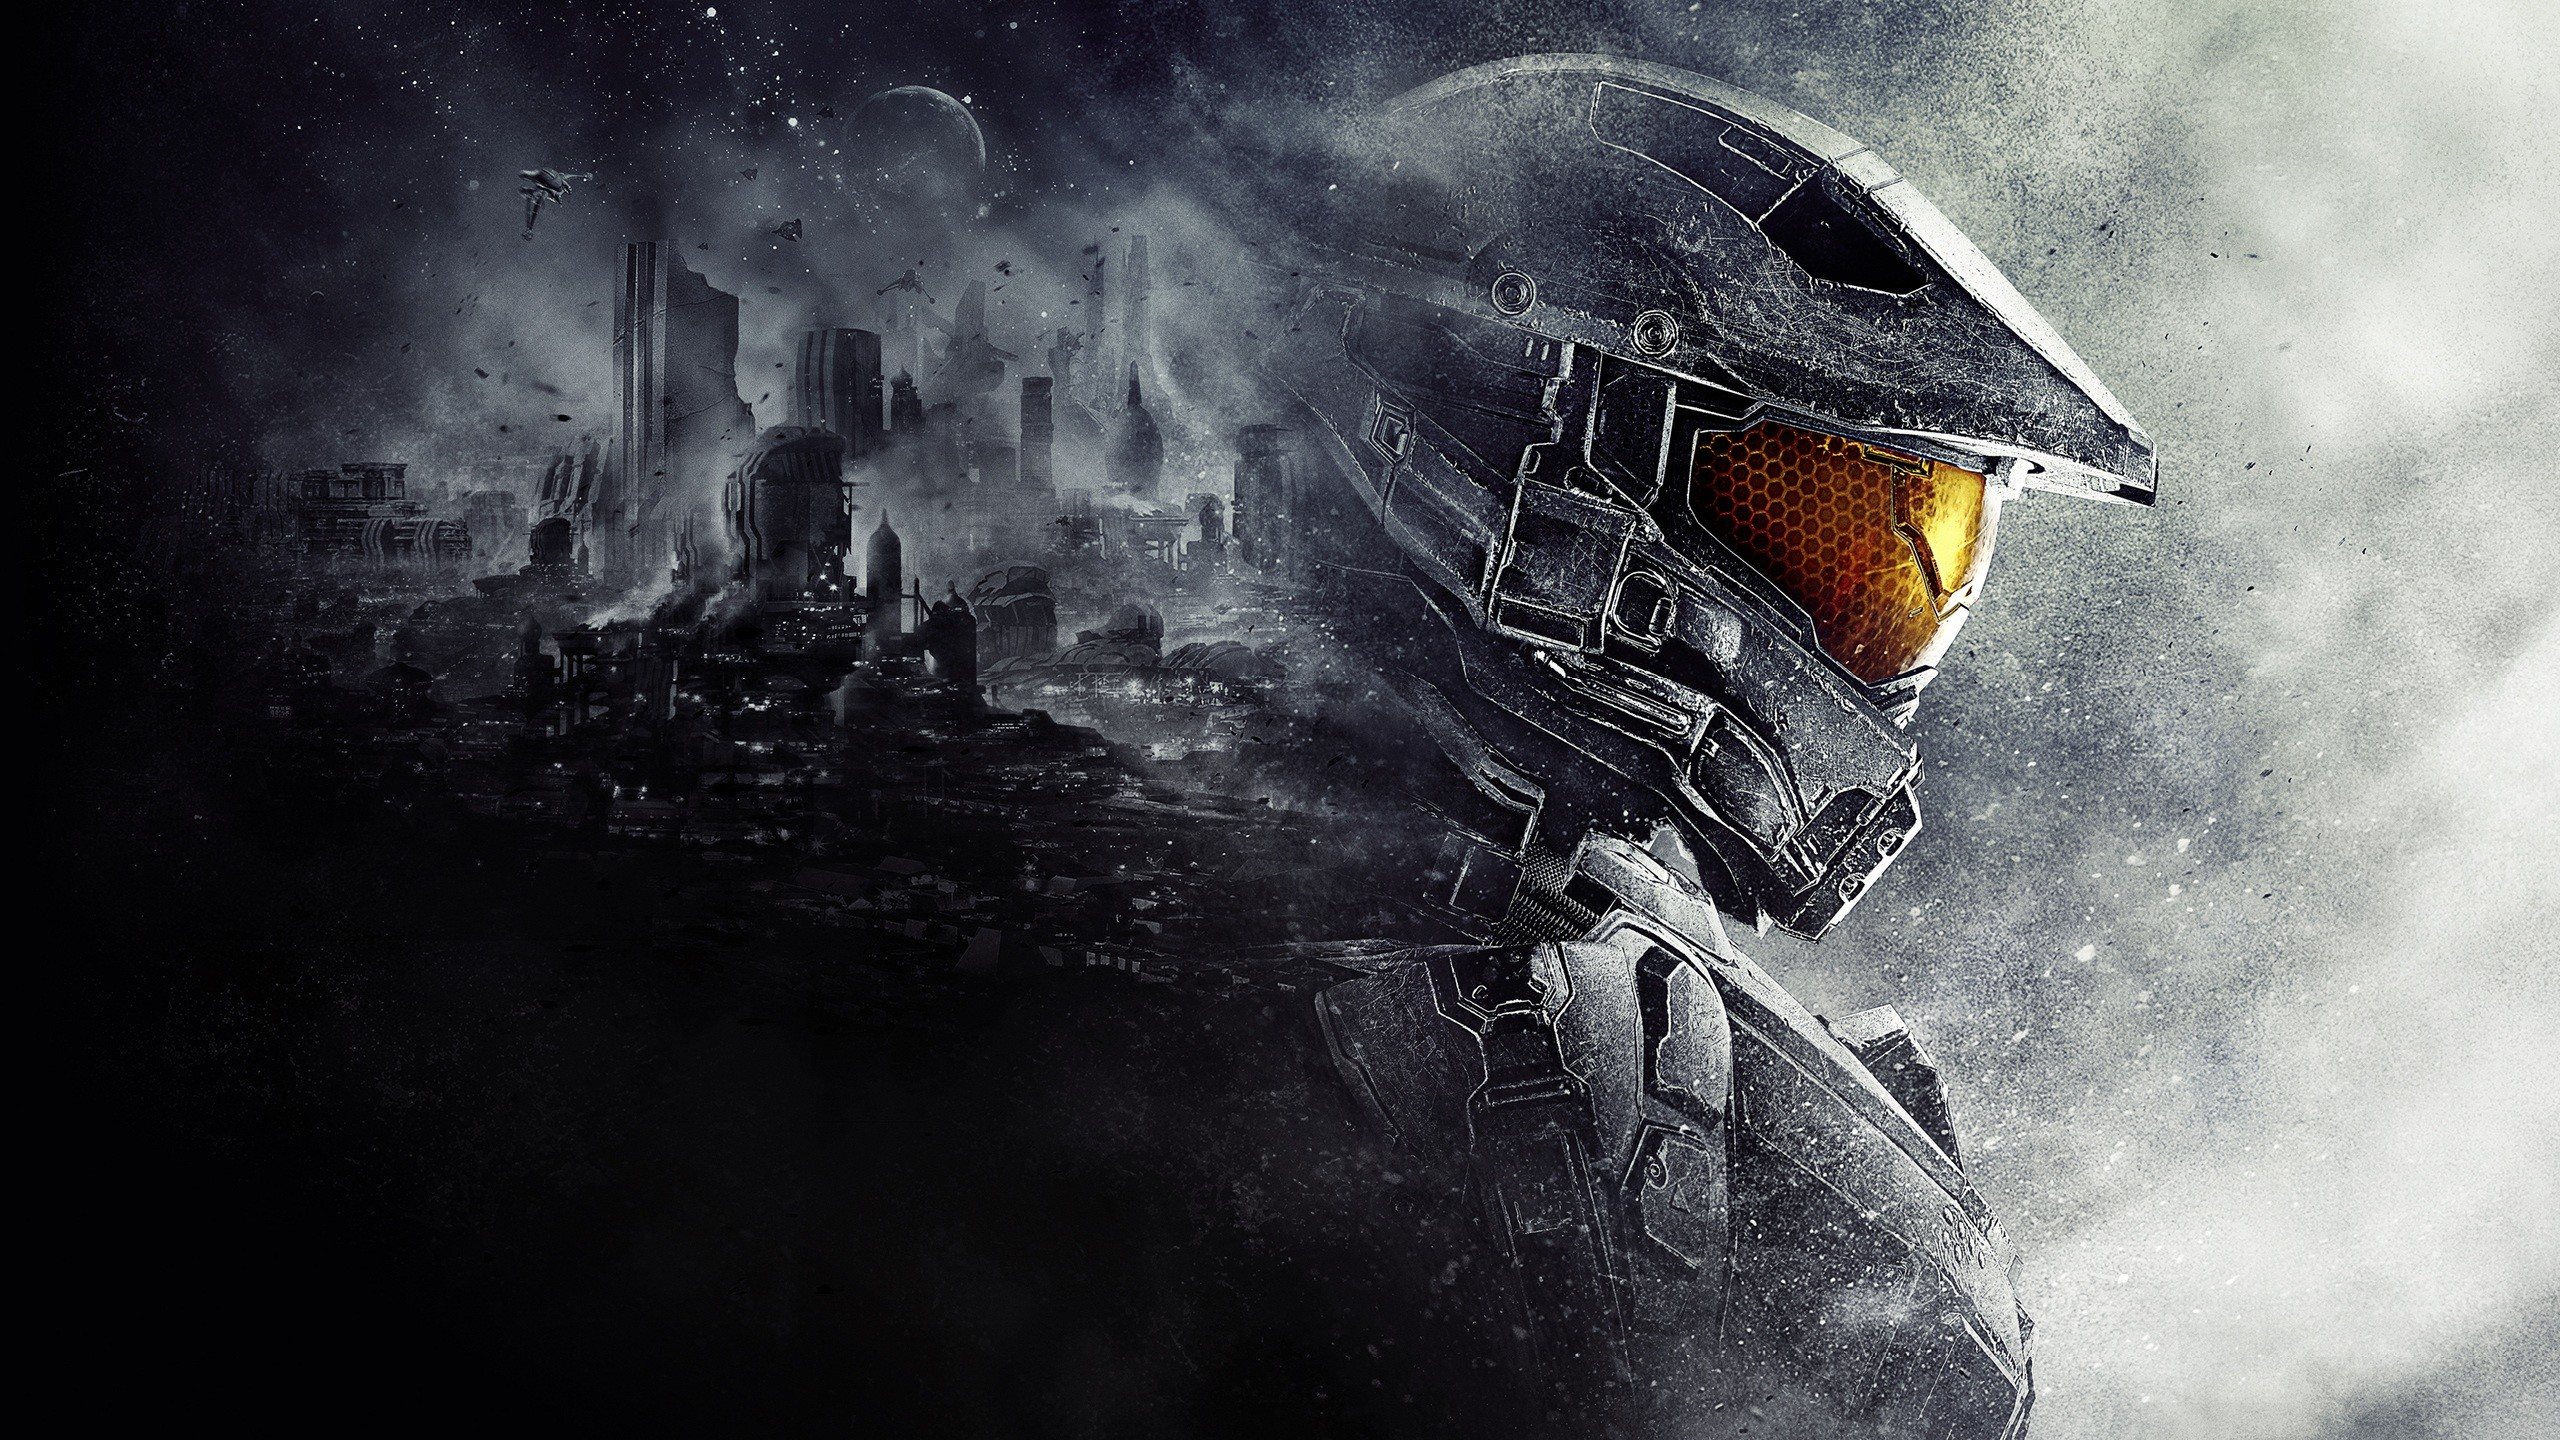 Collection Of Halo 5 Wallpaper On HDWallpapers